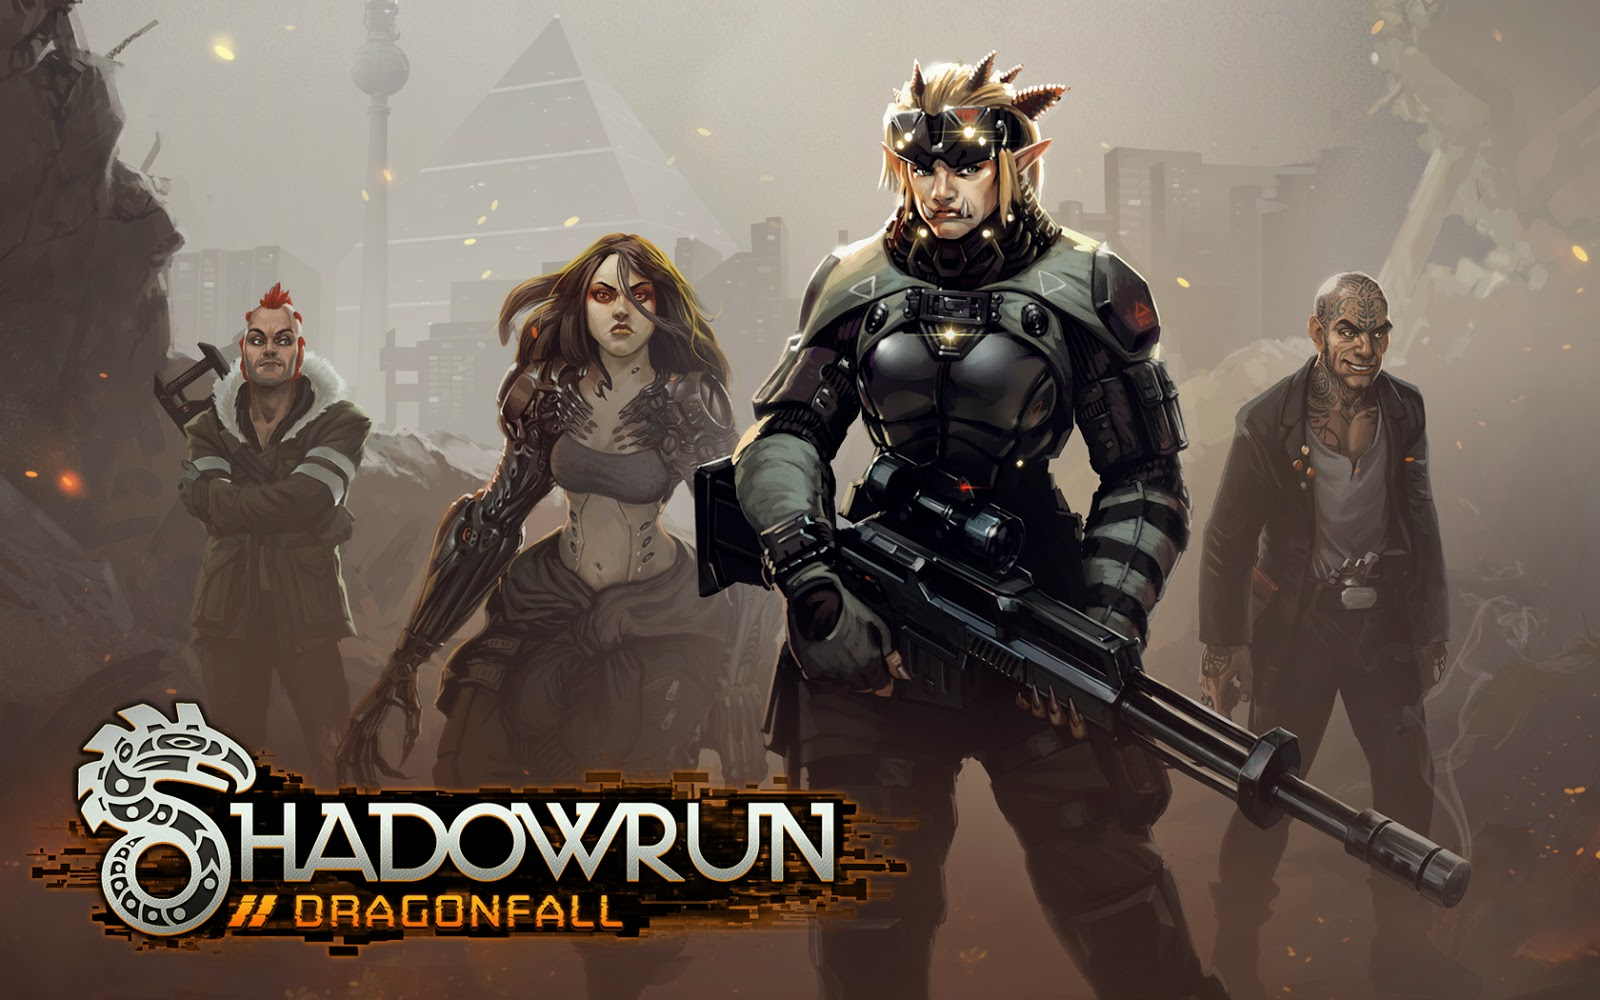 Shadowrun: Dragonfall - DC Apk Data